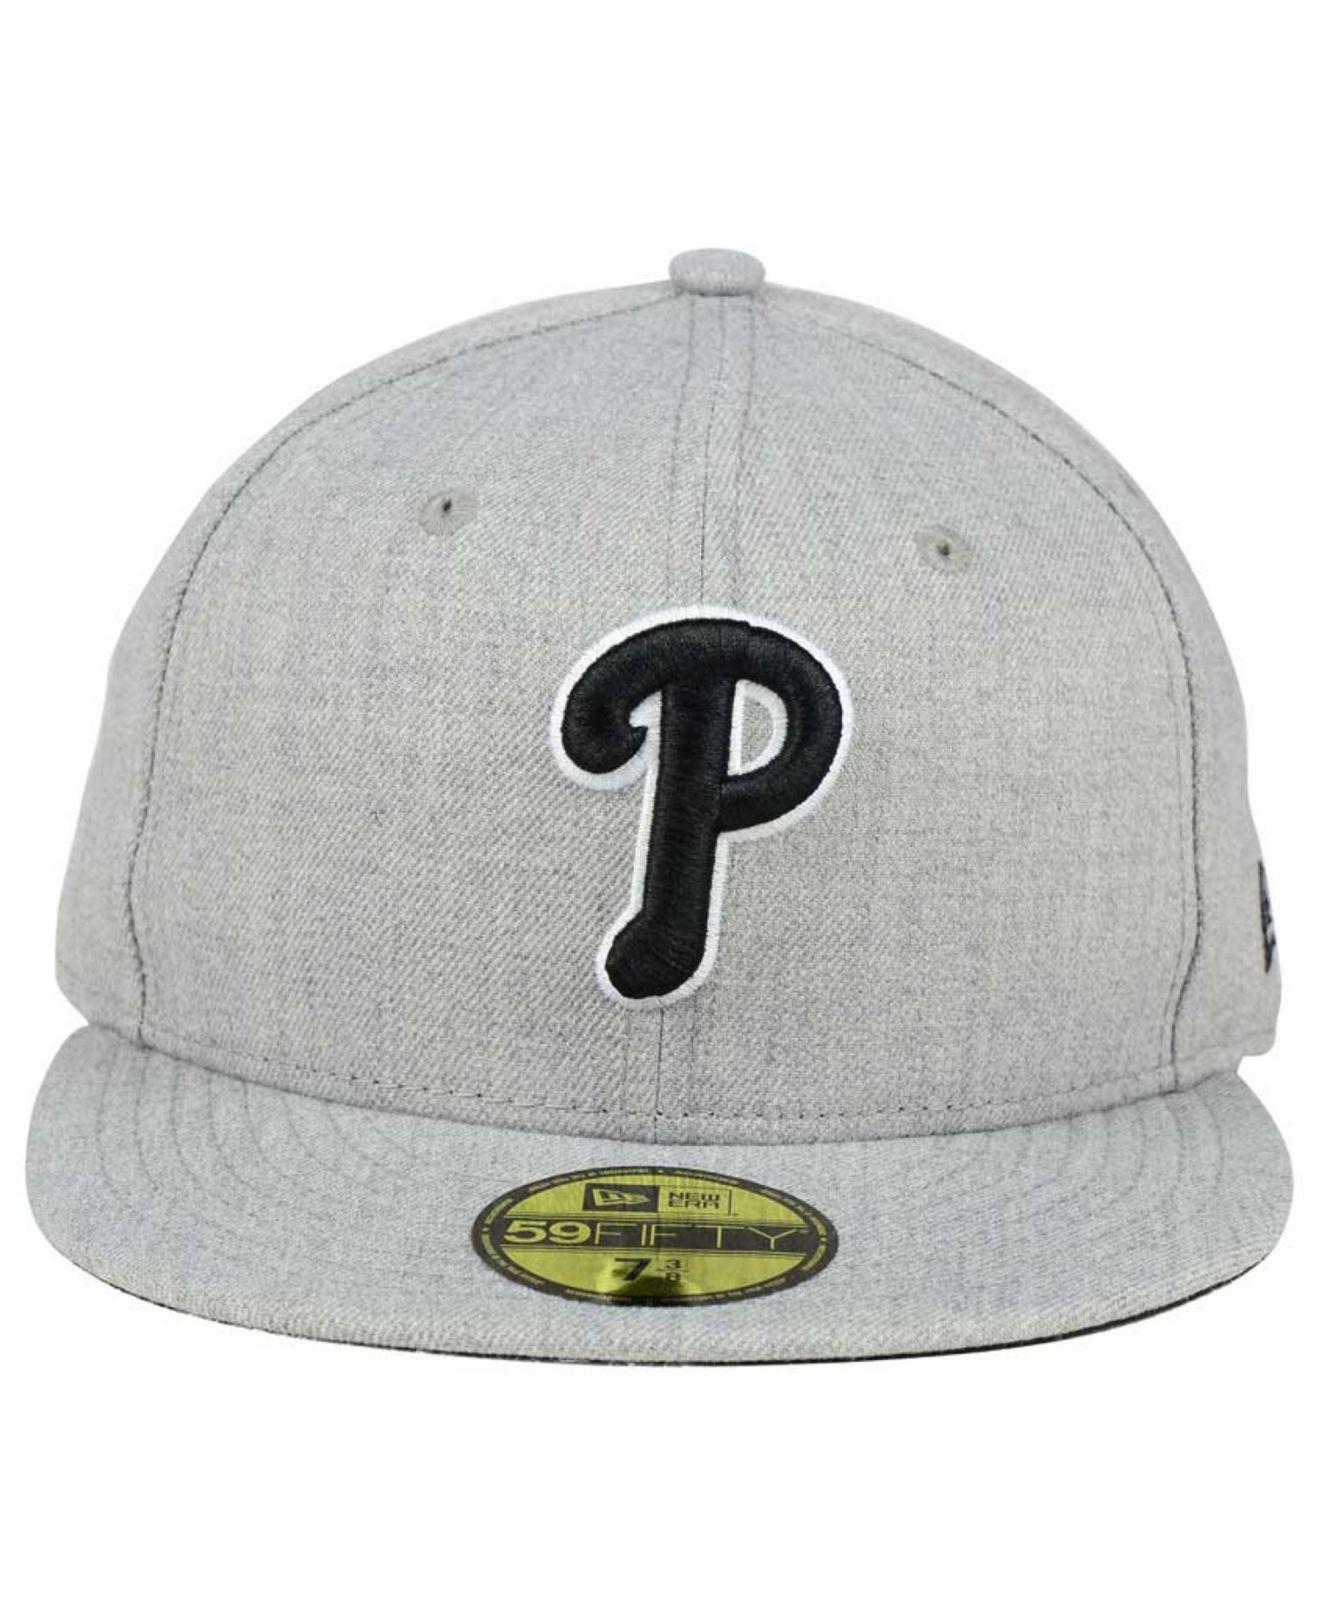 0ad4de1448e79 ... sale lyst ktz philadelphia phillies heather black white 59fifty fitted  cap in gray for men c8552